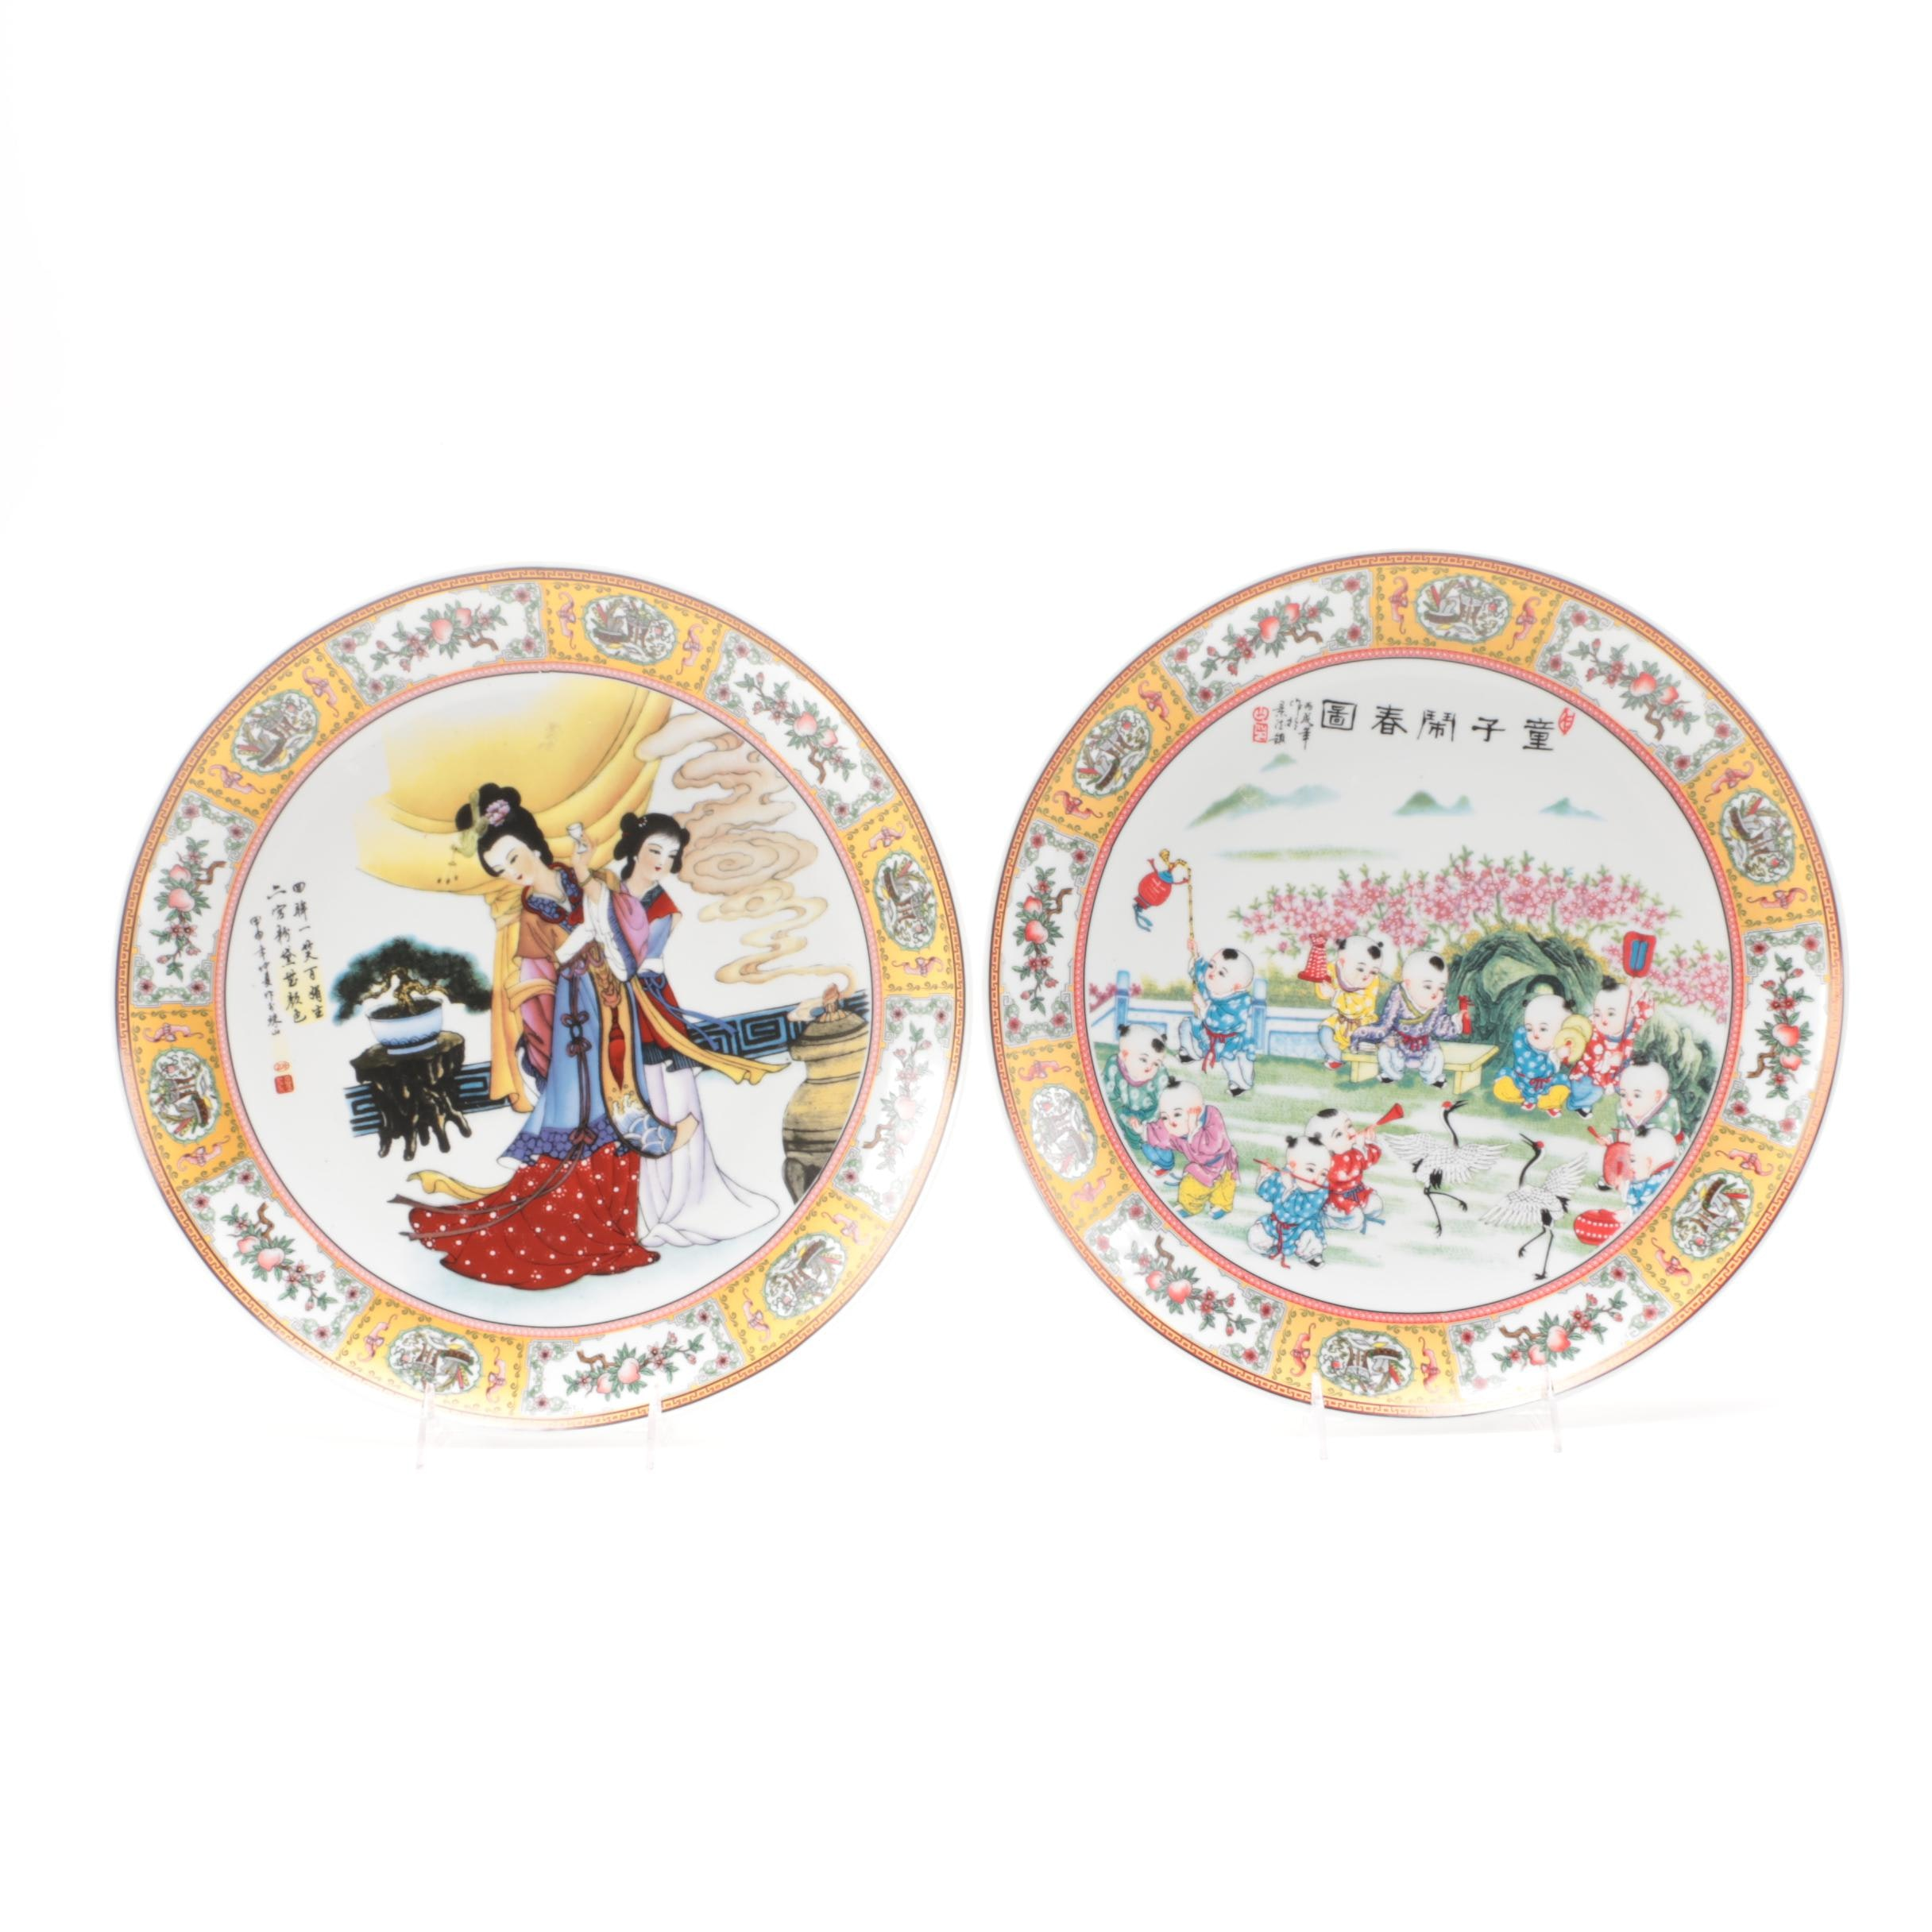 Two Chinese Ceramic Plates